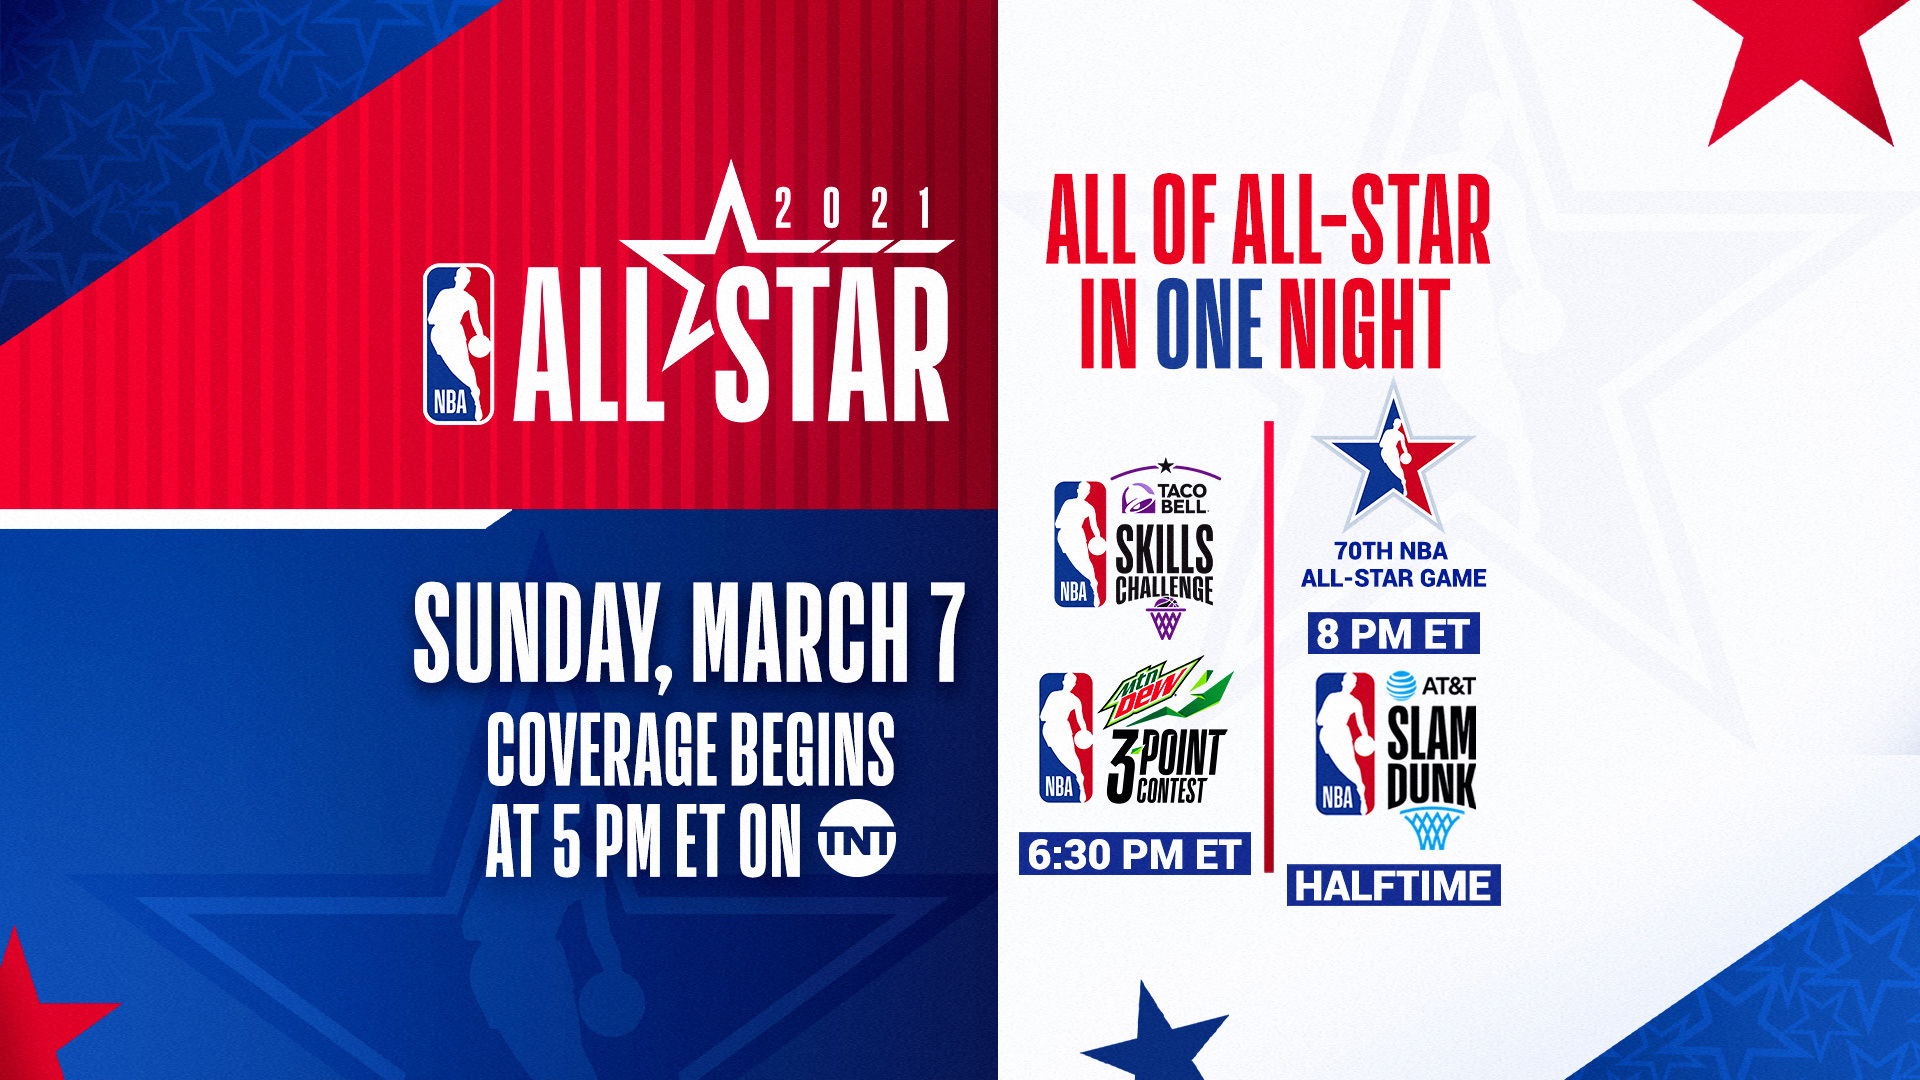 NBA All-Star 2021 to be held on March 7 in Atlanta, supporting HBCUs and COVID-19 equity efforts